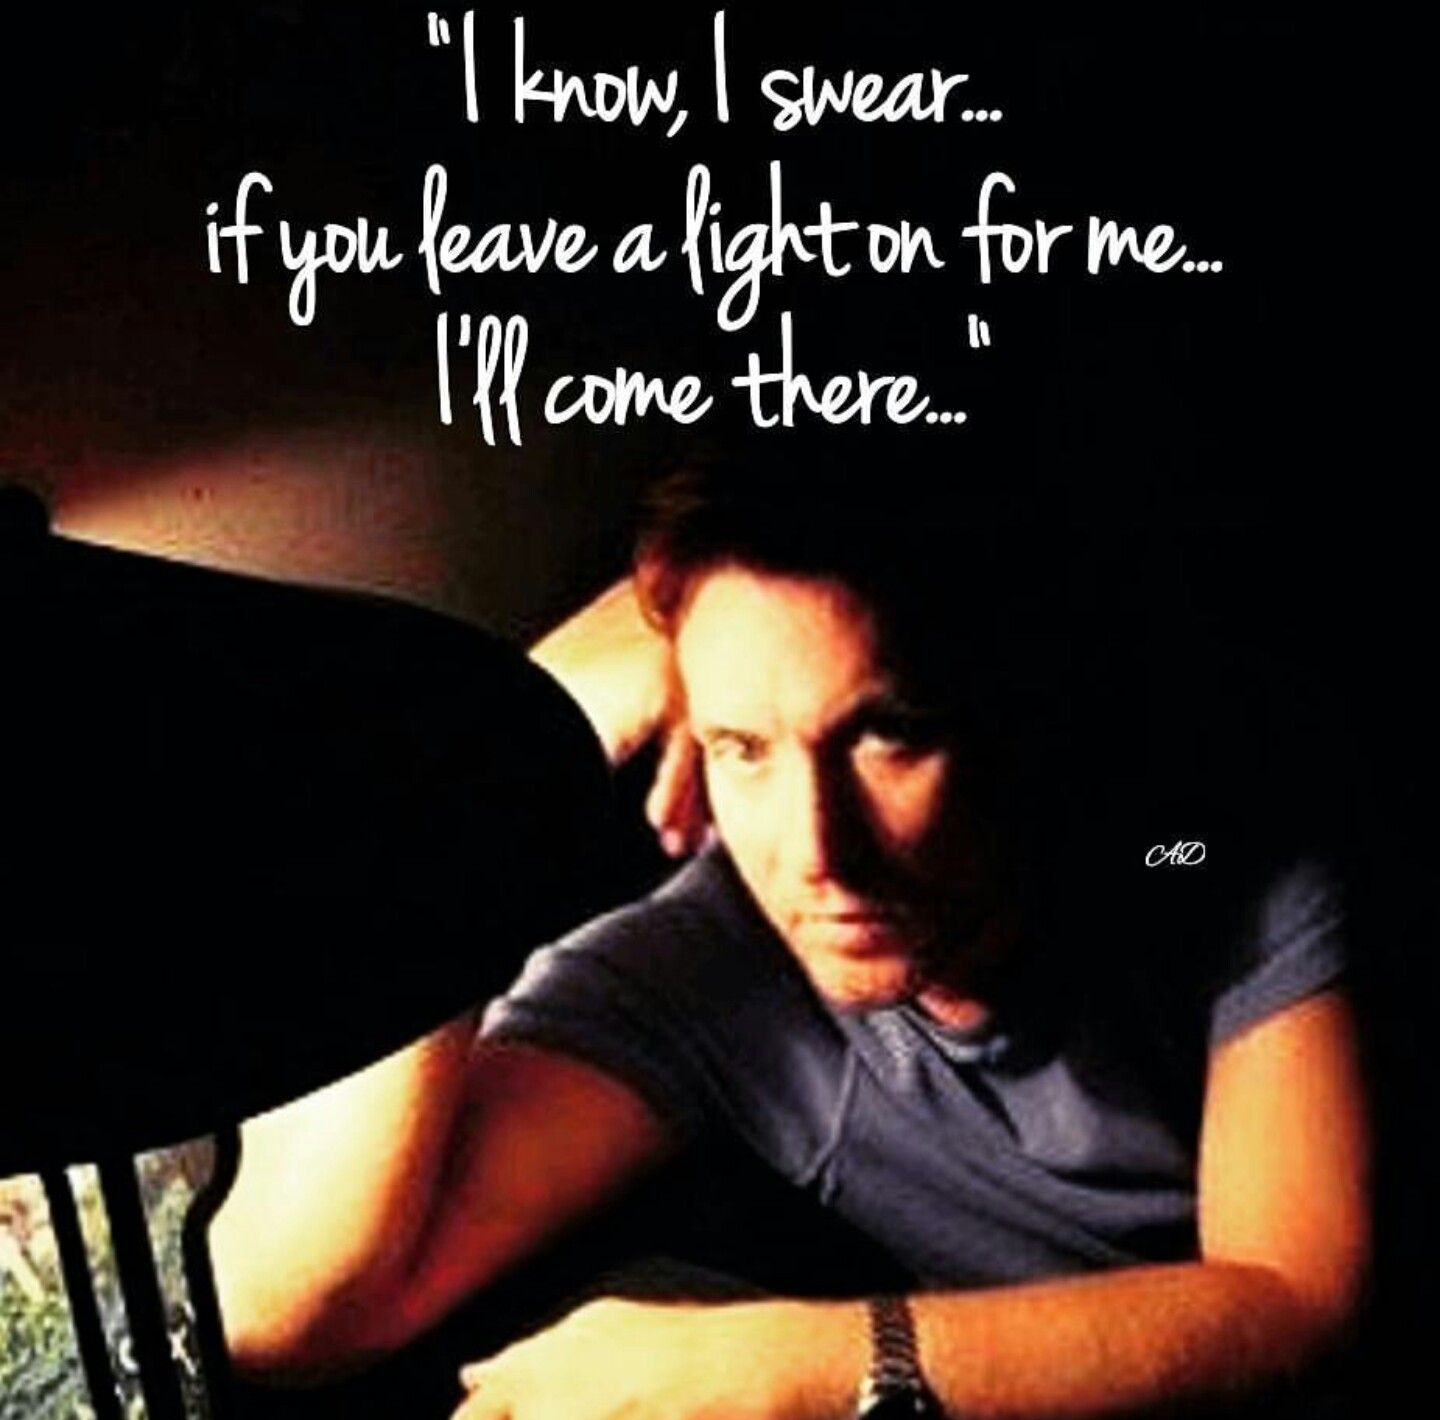 Leave A Light On For Me By Duran Duran Simon Le Bon Music Pics Duran Lyric Quotes